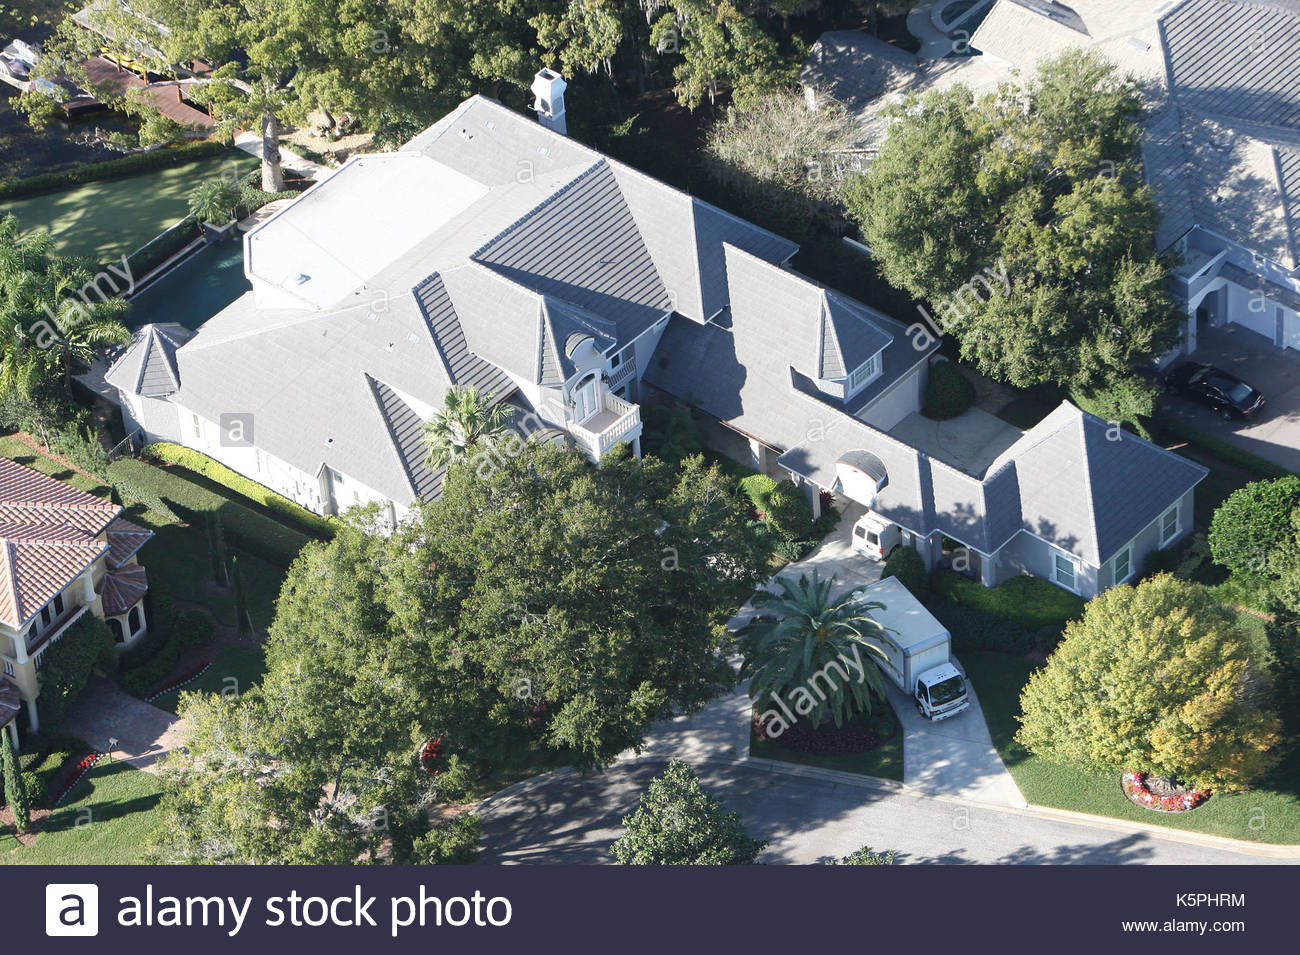 trucks outside tiger woods u0026 39  house  aerial photographs show